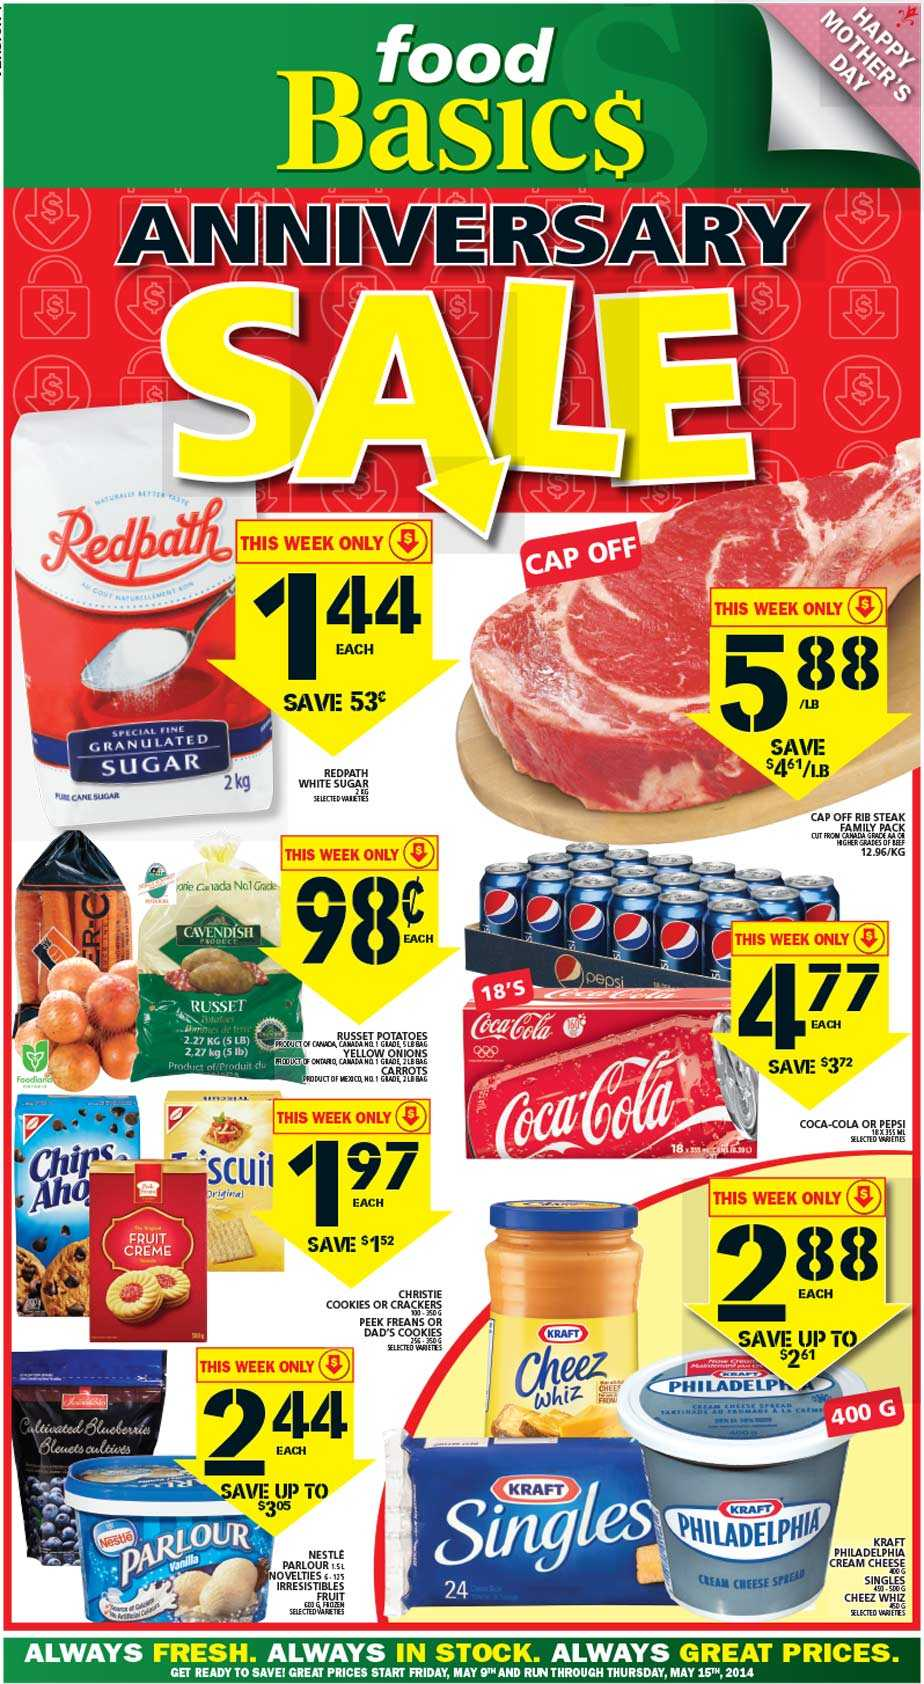 Food basics flyer may 9 to 15 canada for Food pantry near me open on sunday